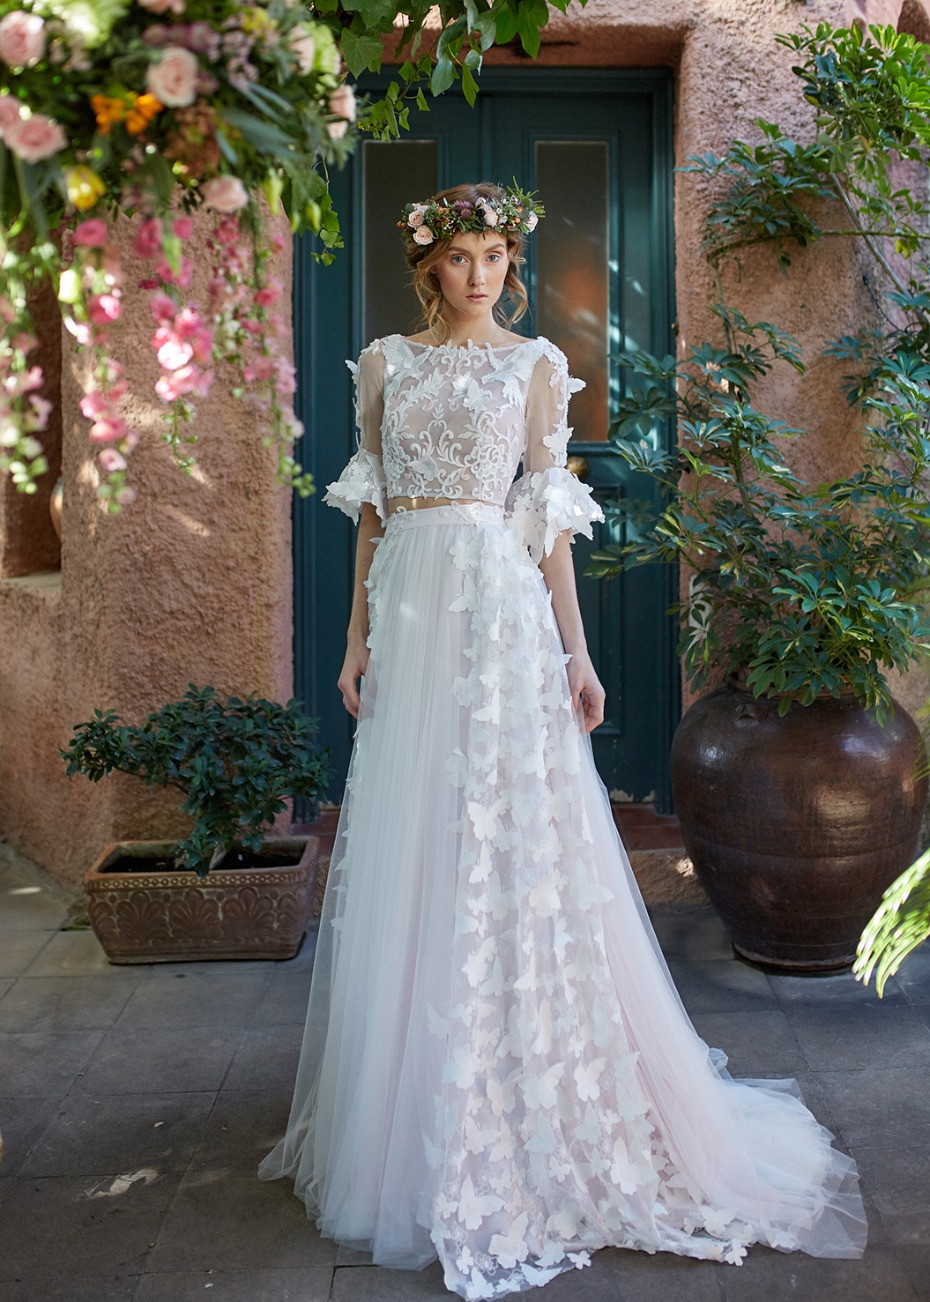 Butterfly appliqué two piece wedding dress from Made Bride by Antonea